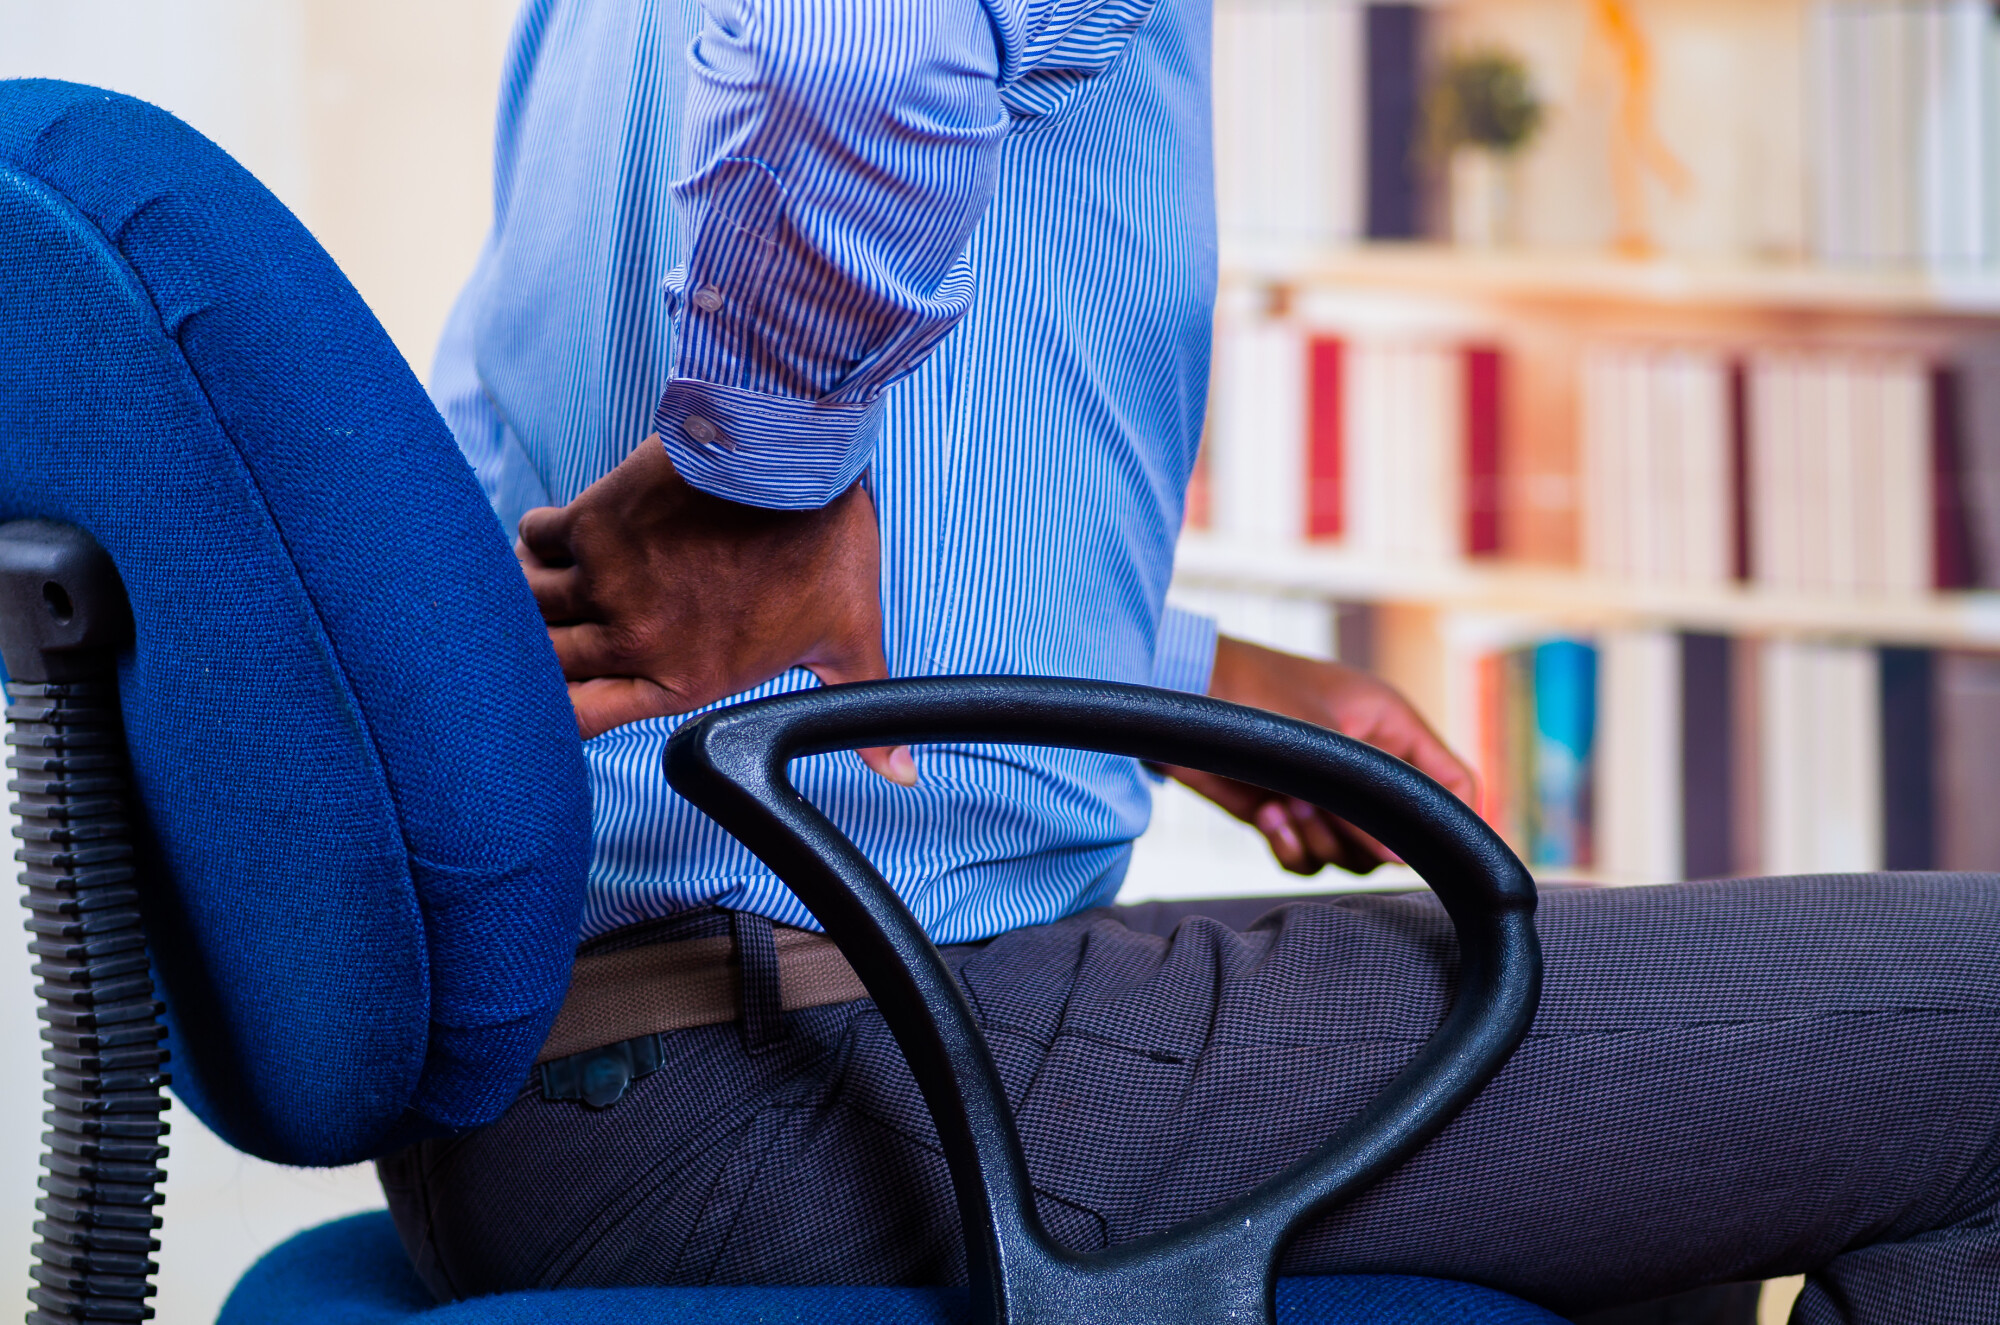 Back Pain at Work? Here's What You Can Do to Prevent It